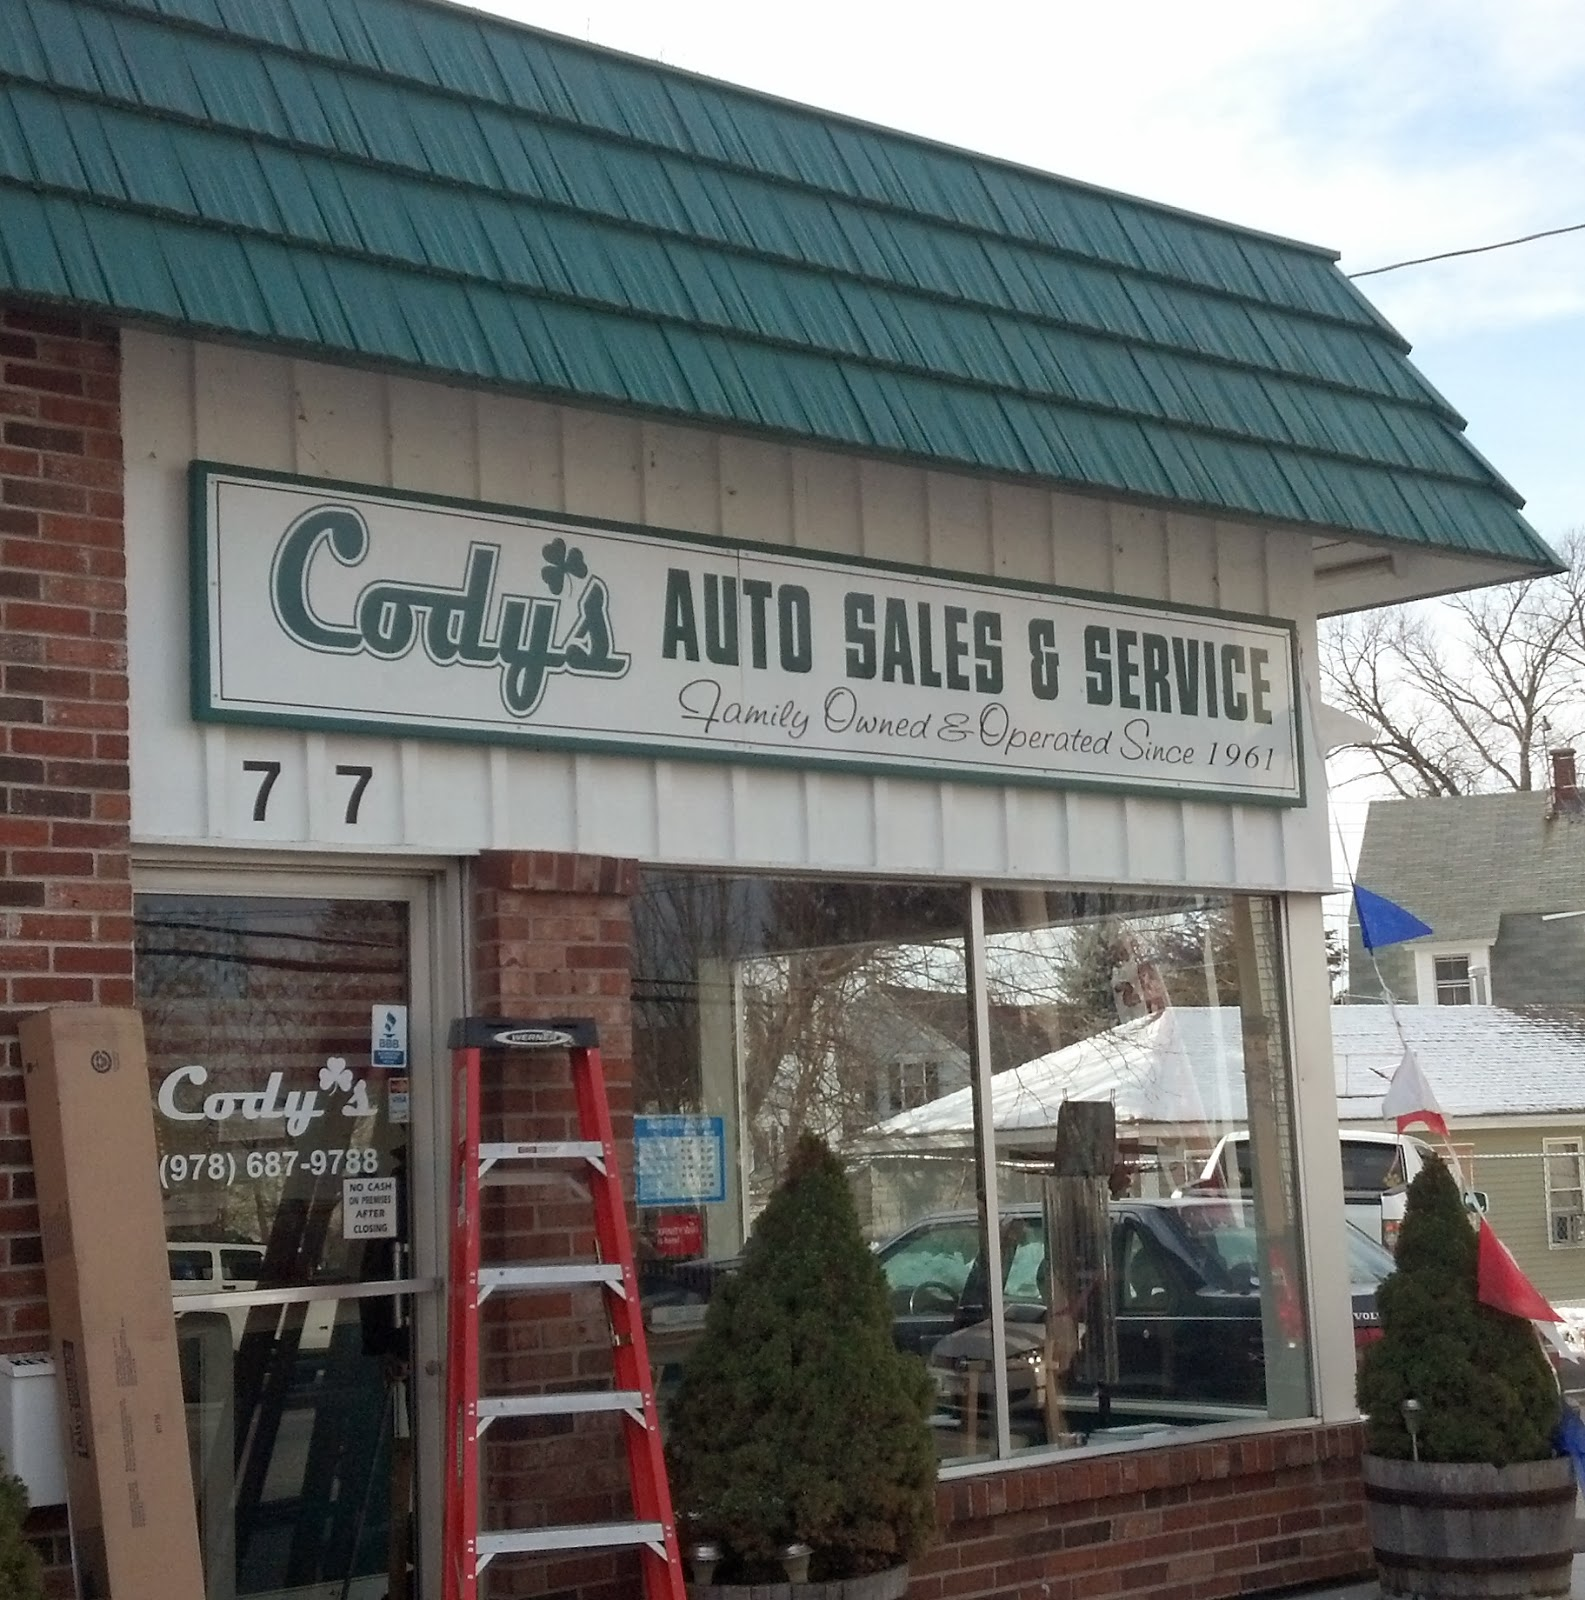 Cody's Auto Sales and Service Storefront Signage